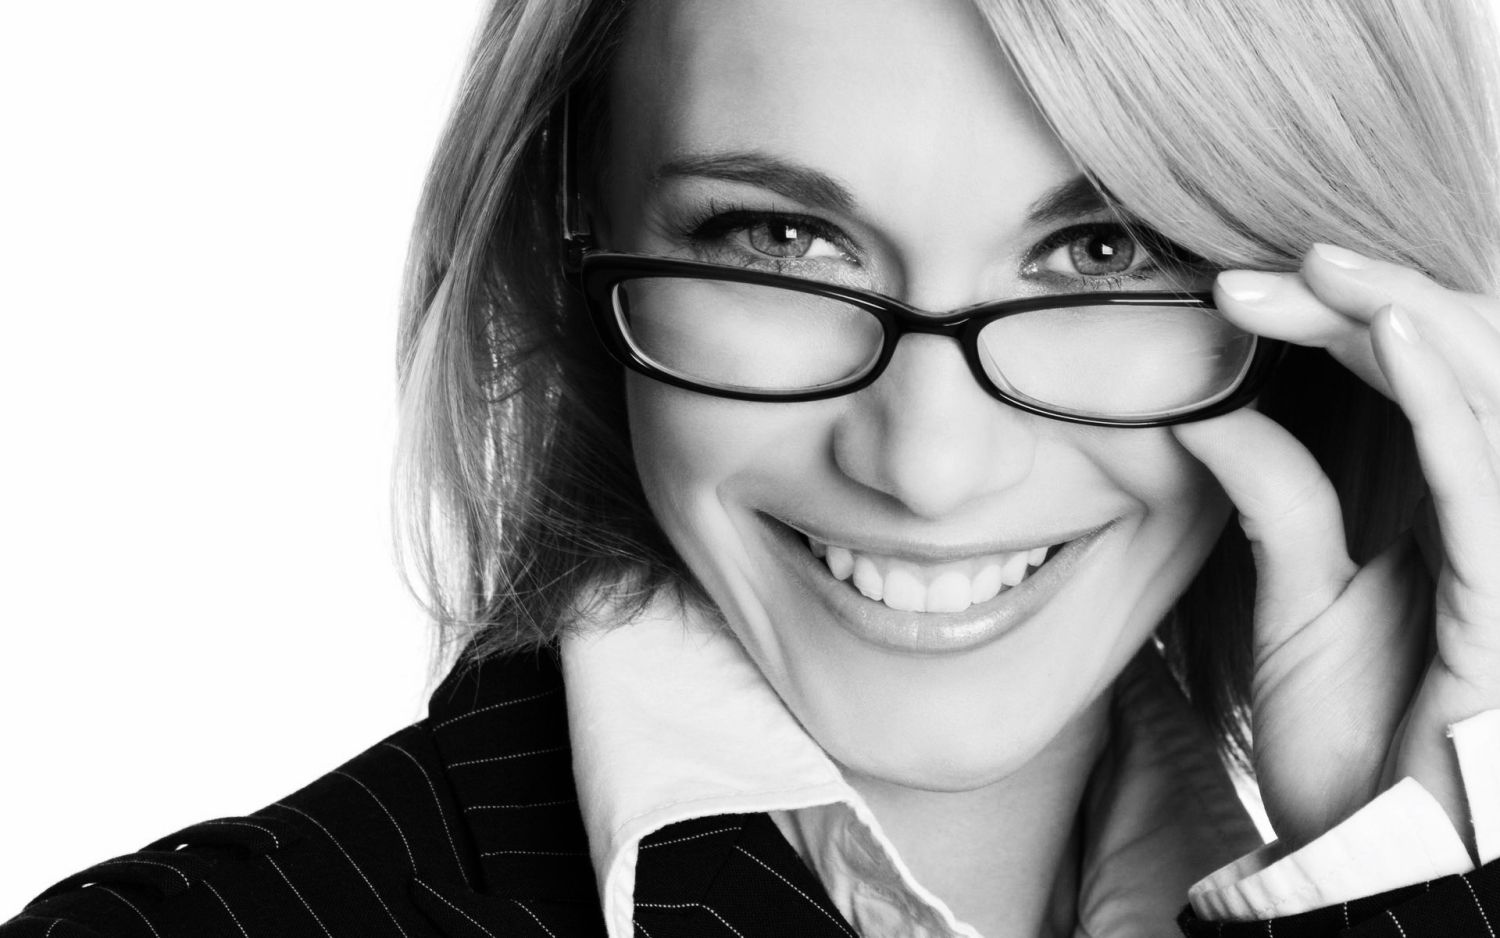 image of a woman wearing glasses